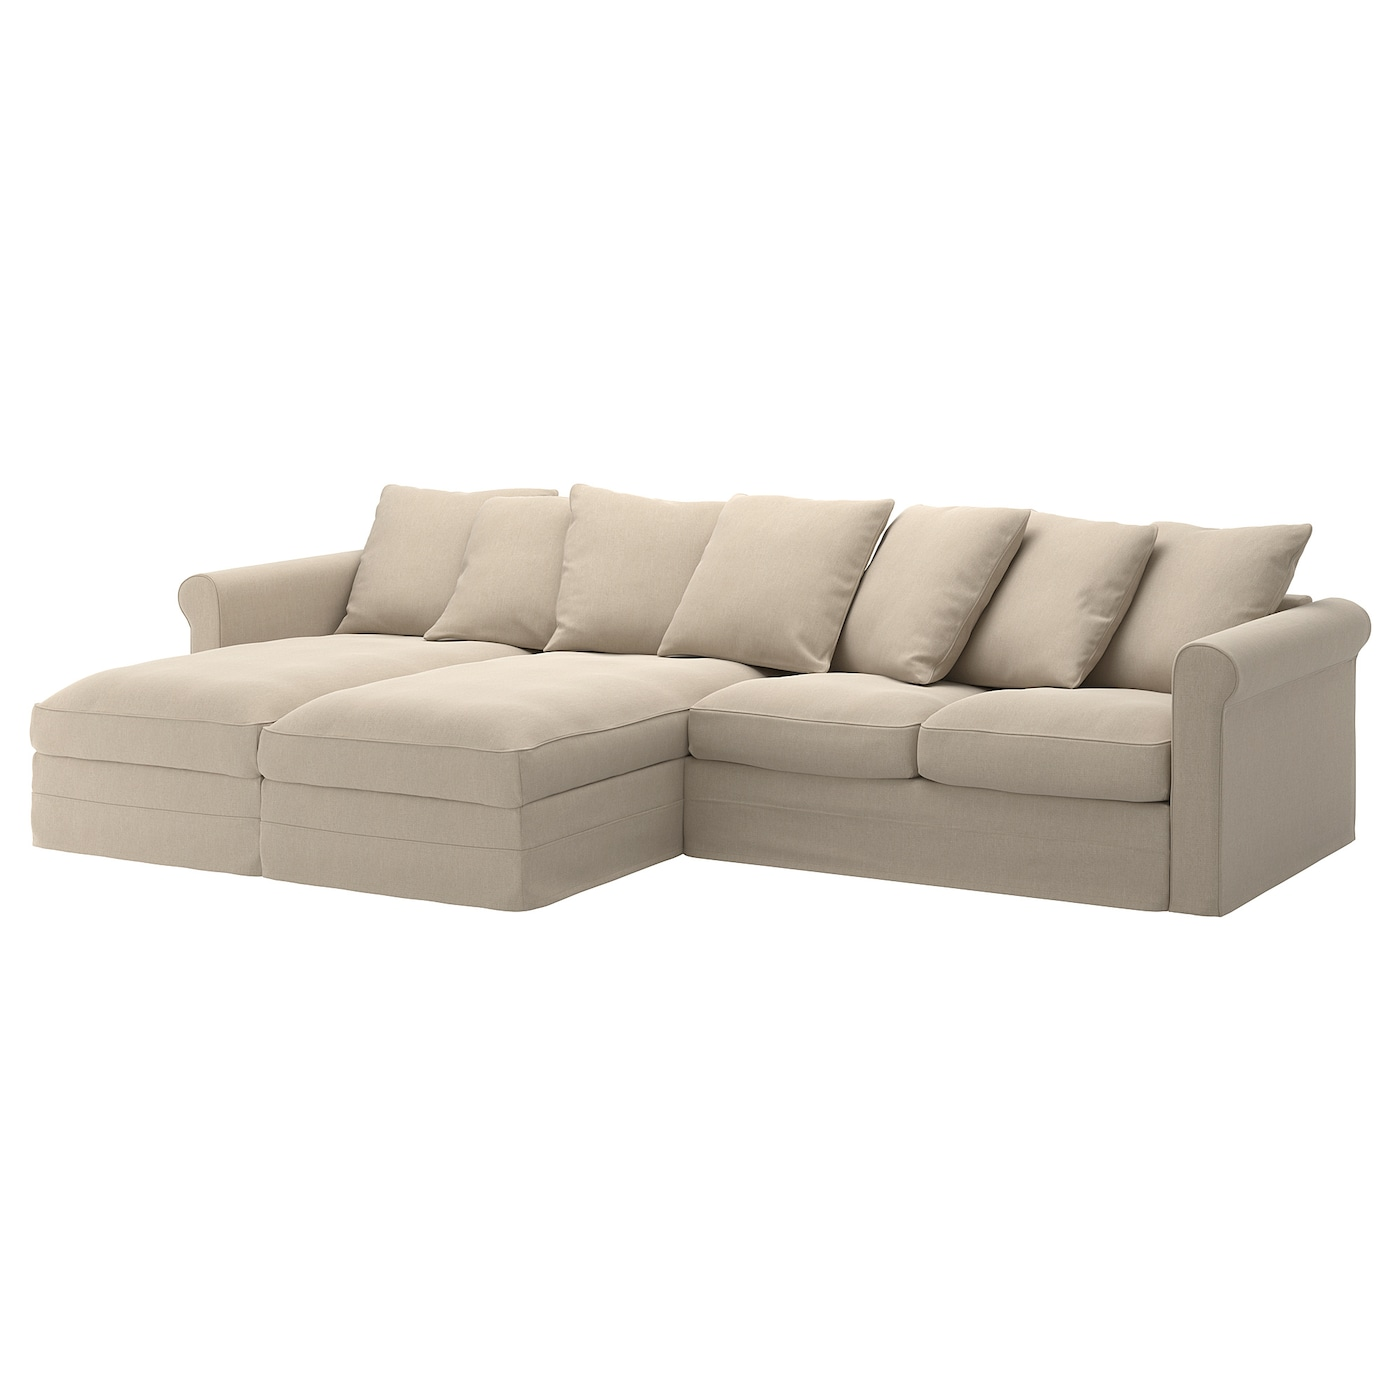 Ikea GrÖnlid 4 Seat Sofa The Cover Is Easy To Keep Clean Since It